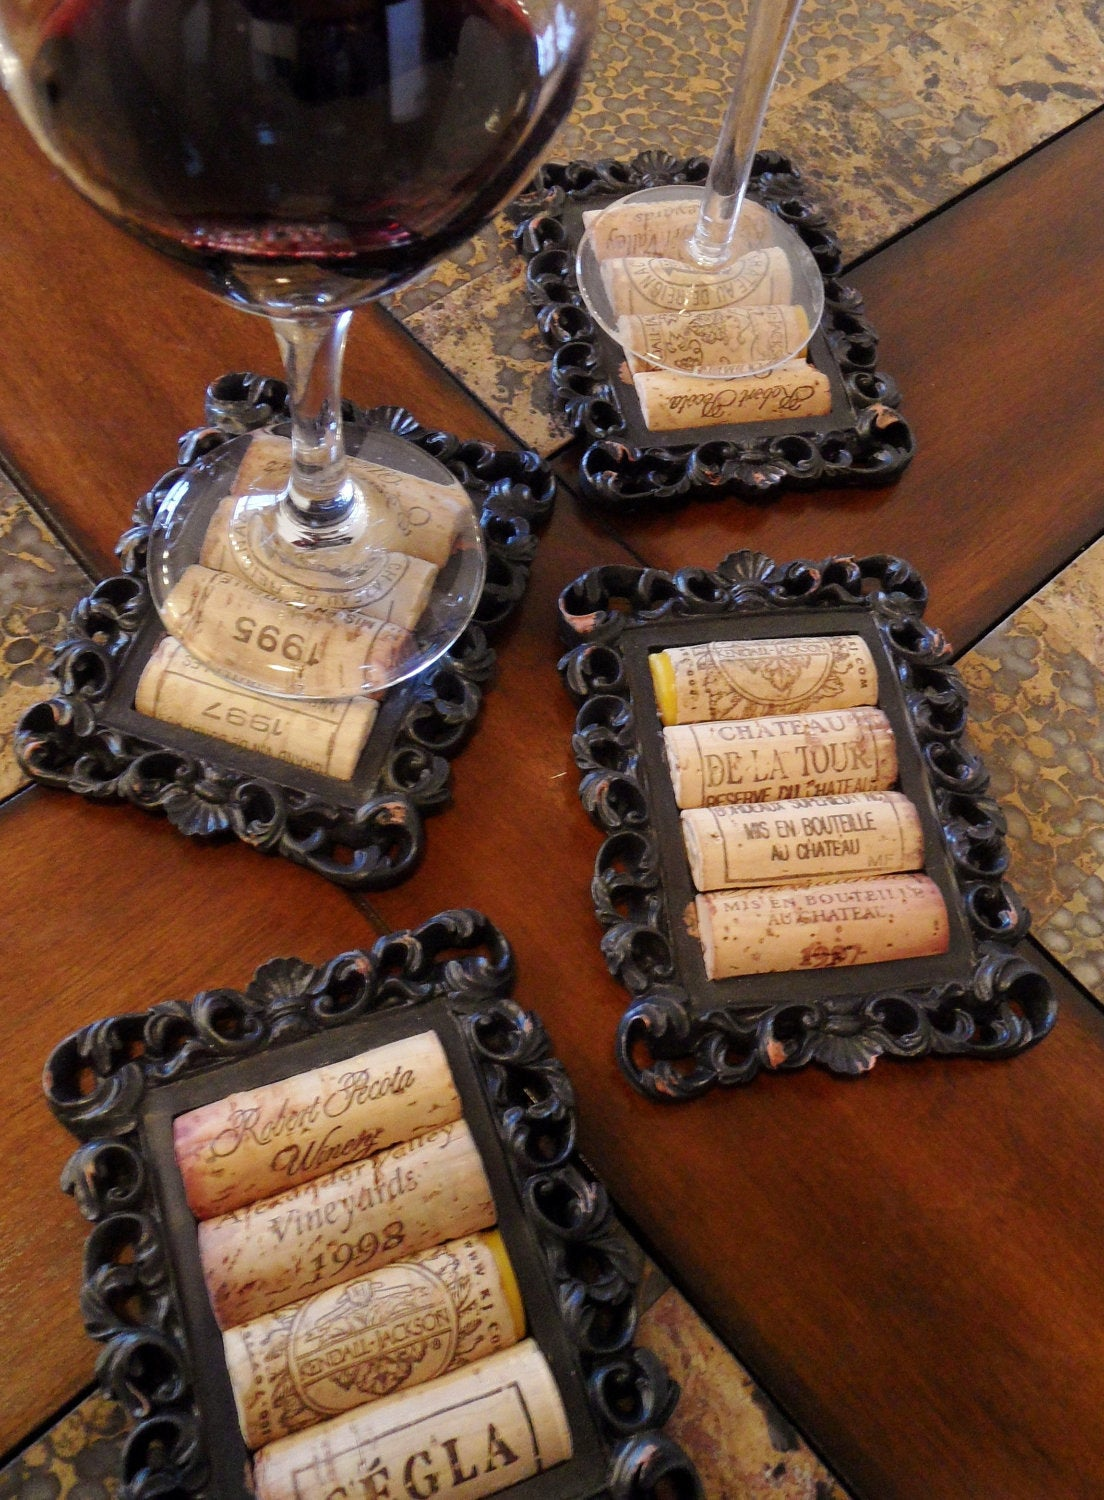 4 Black Rustic Cork Coasters